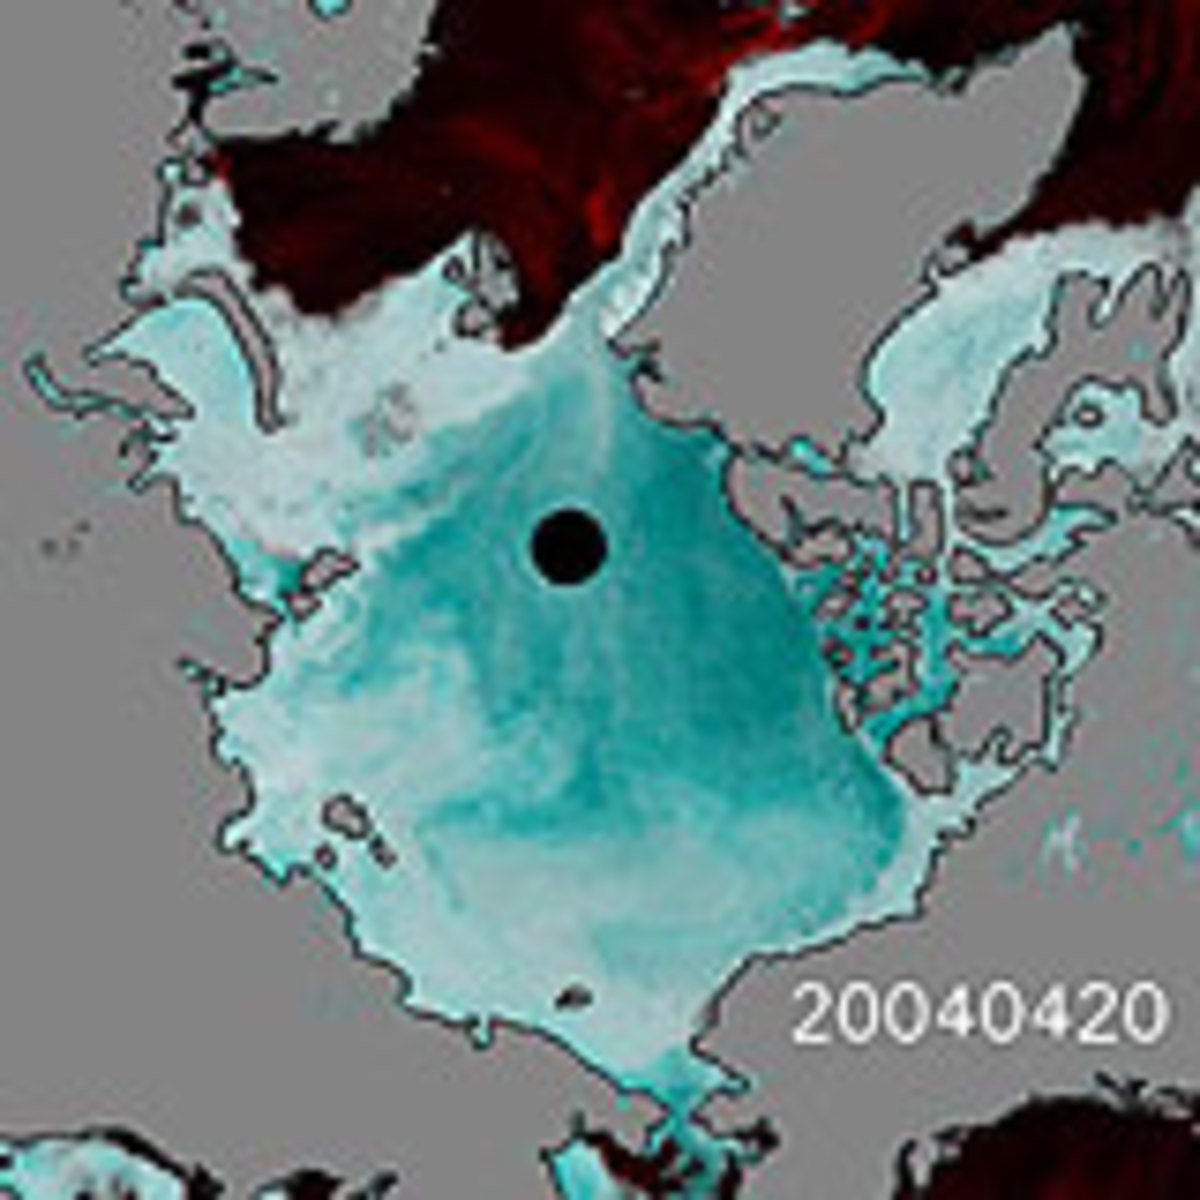 The black hole indicates where satellites are unable to retrieve data and fly over due to orbital restrictions or what is known as the No Fly Zone.